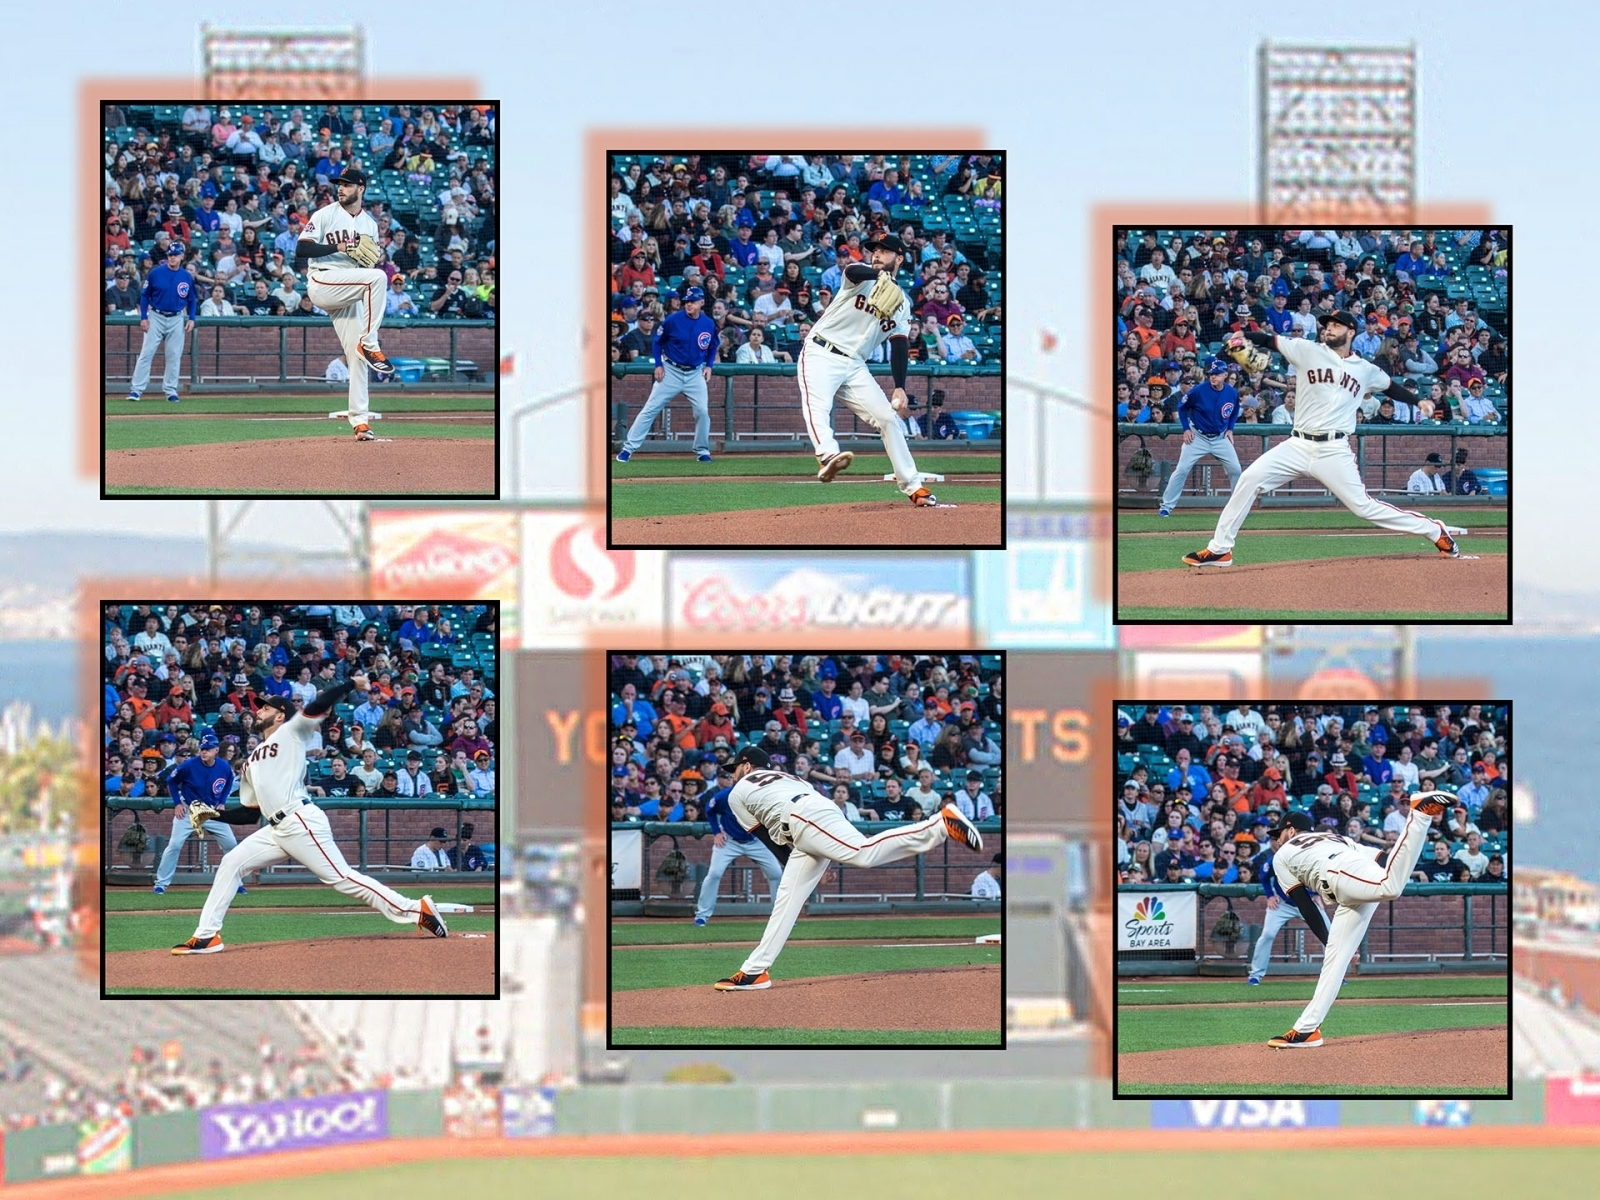 Andrew-Suarez-Giants-Starting-Pitcher-Against-the-Cubs-09-09-2018-SA-Best-in-Show-by-Bob-Cossins-ML